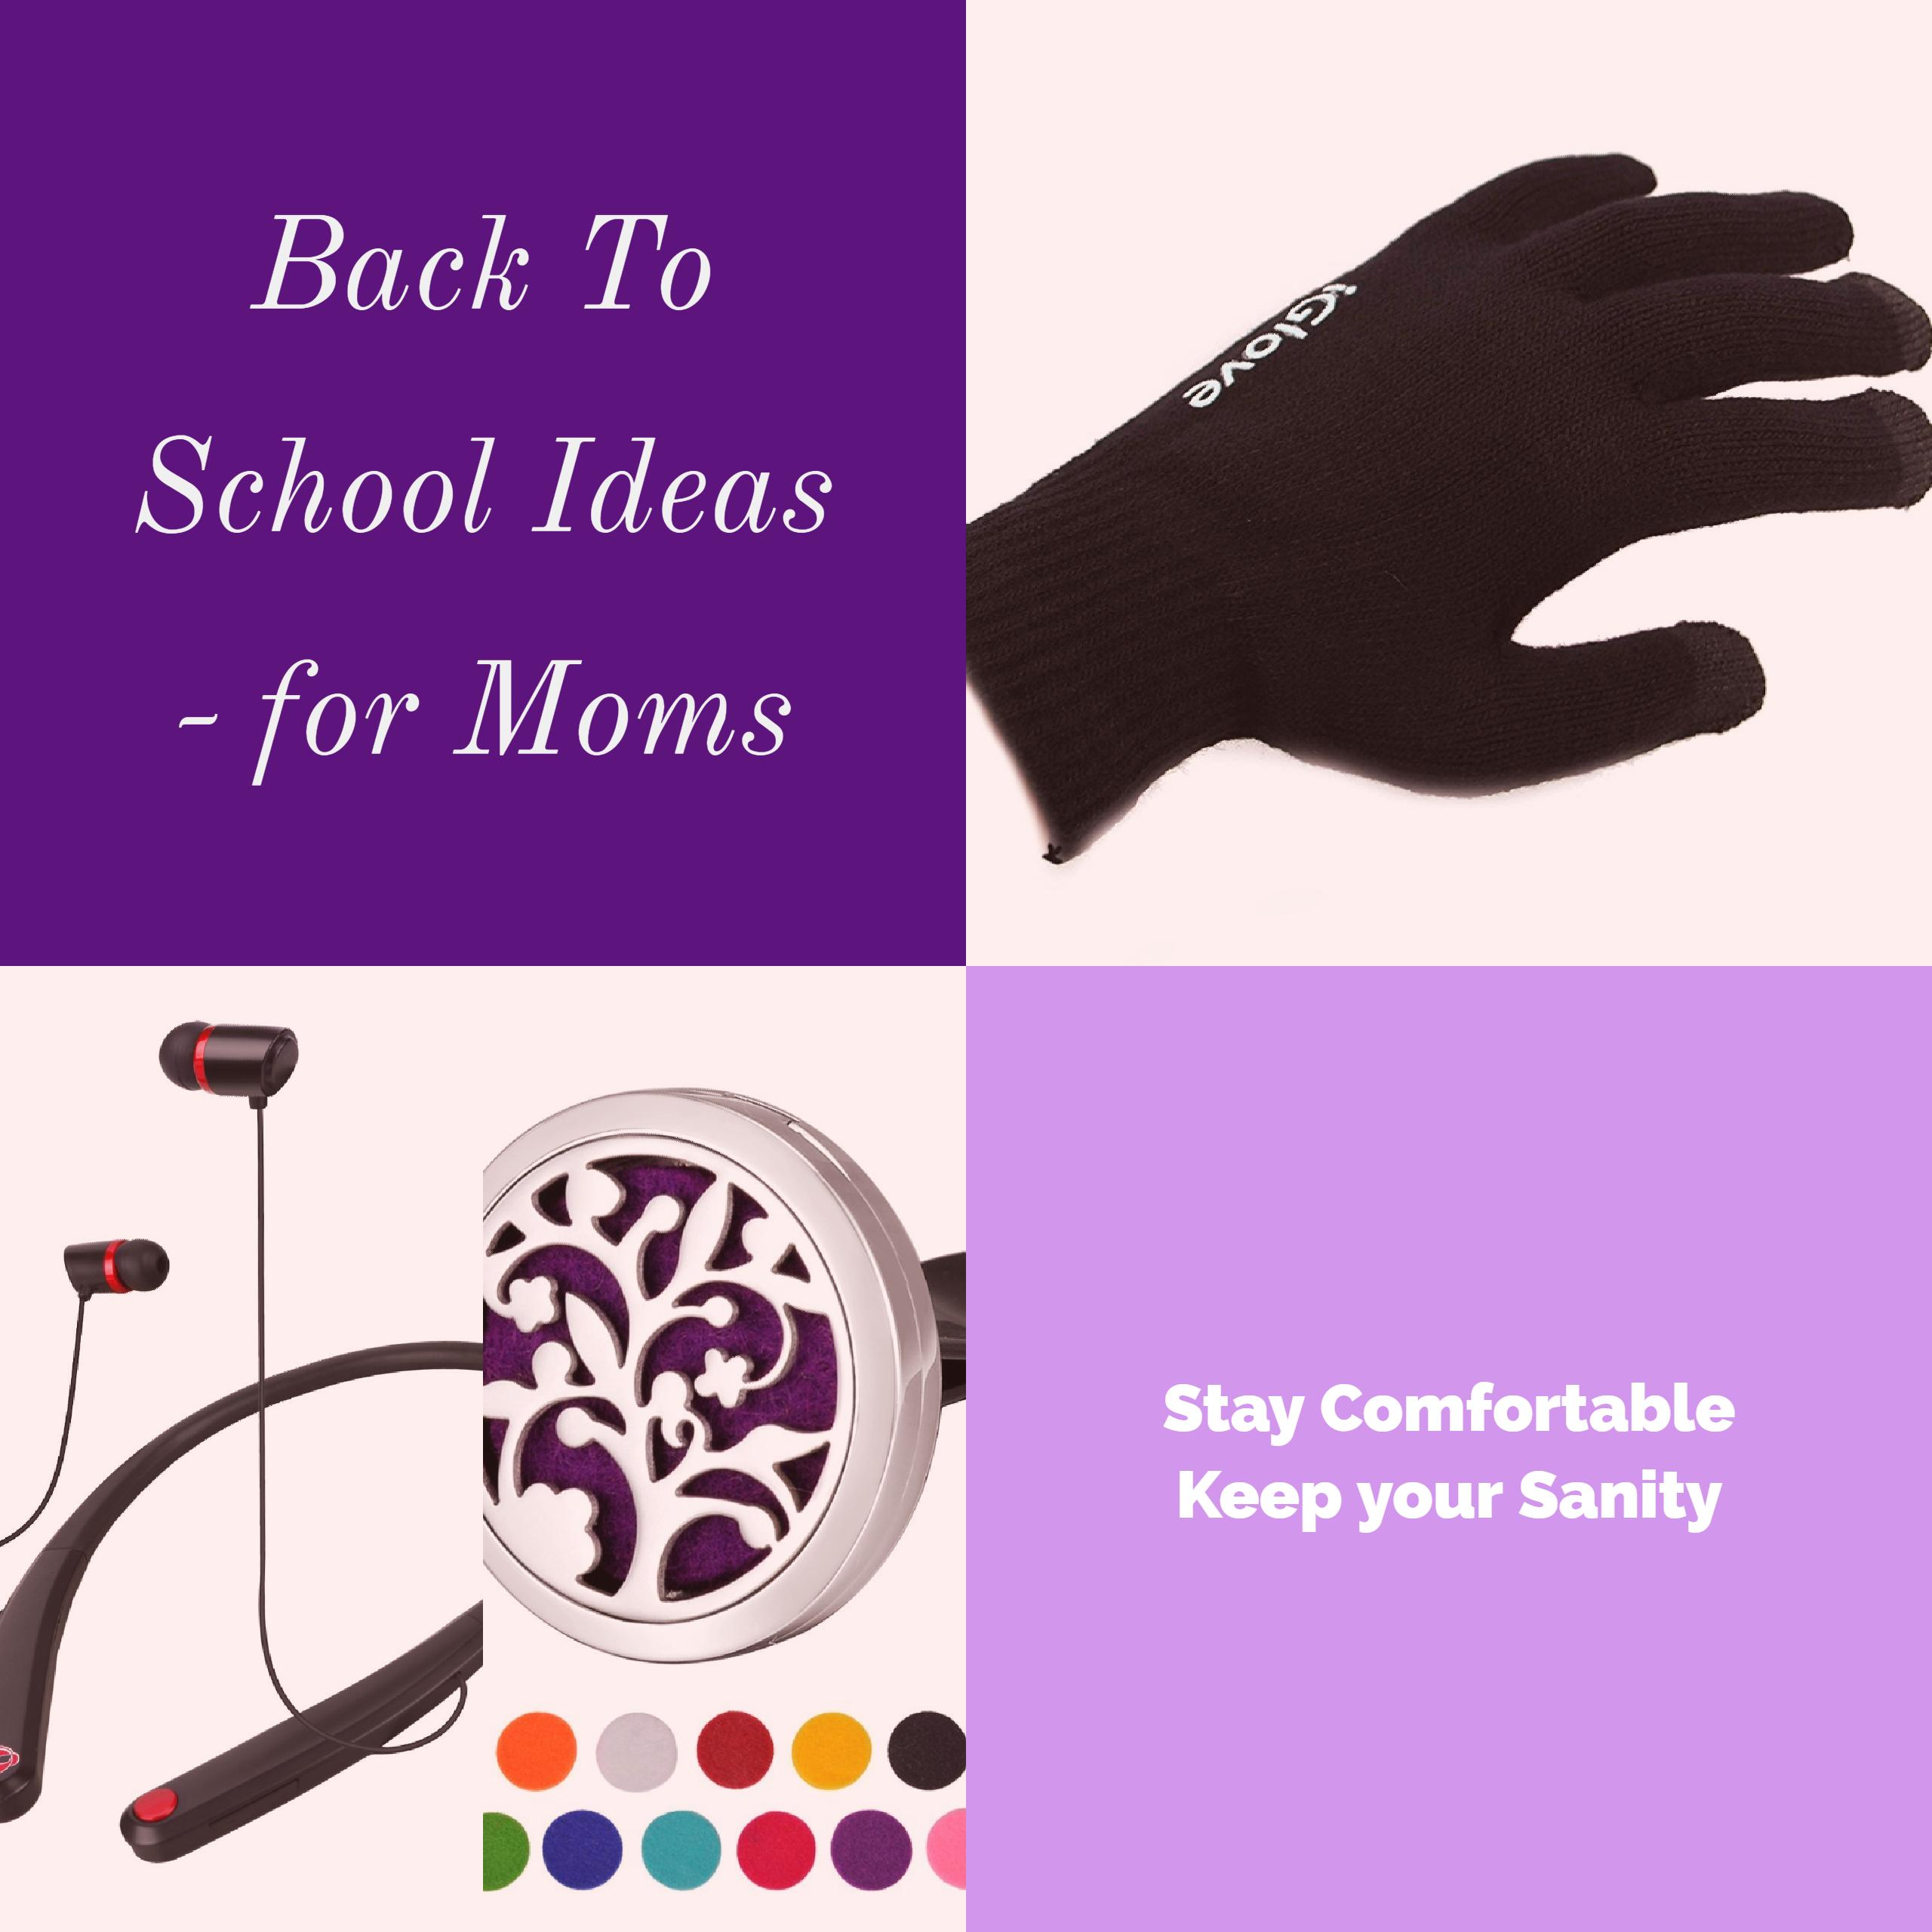 Back to School Ideas for Moms, www.moderngillie.com